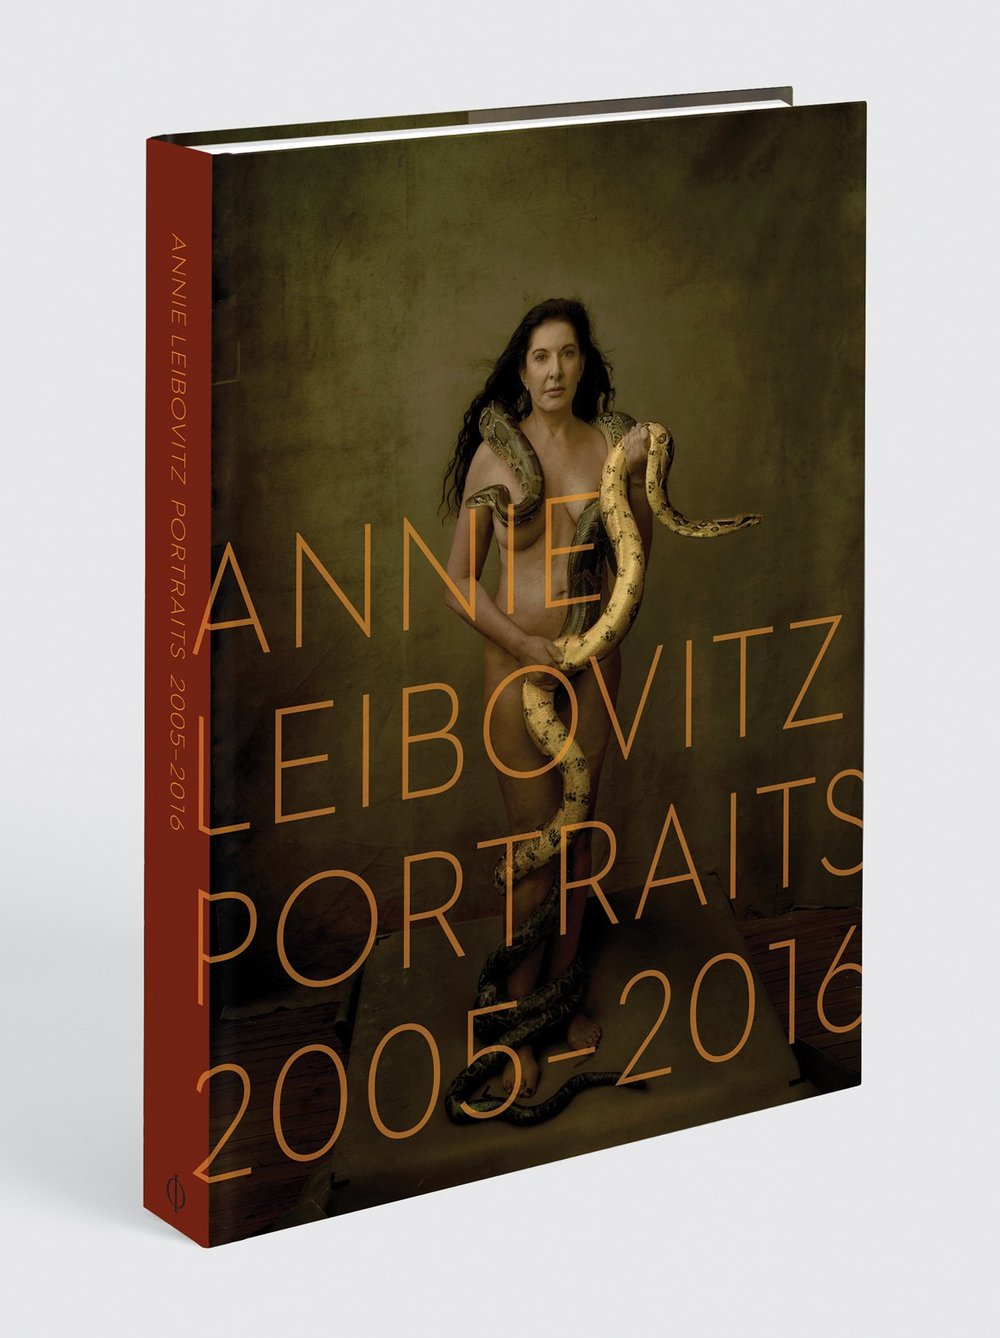 Annie Leibovitz: Portraits 2005-2016 - This collection is a great example of Leibovitz mastering portrait lighting.